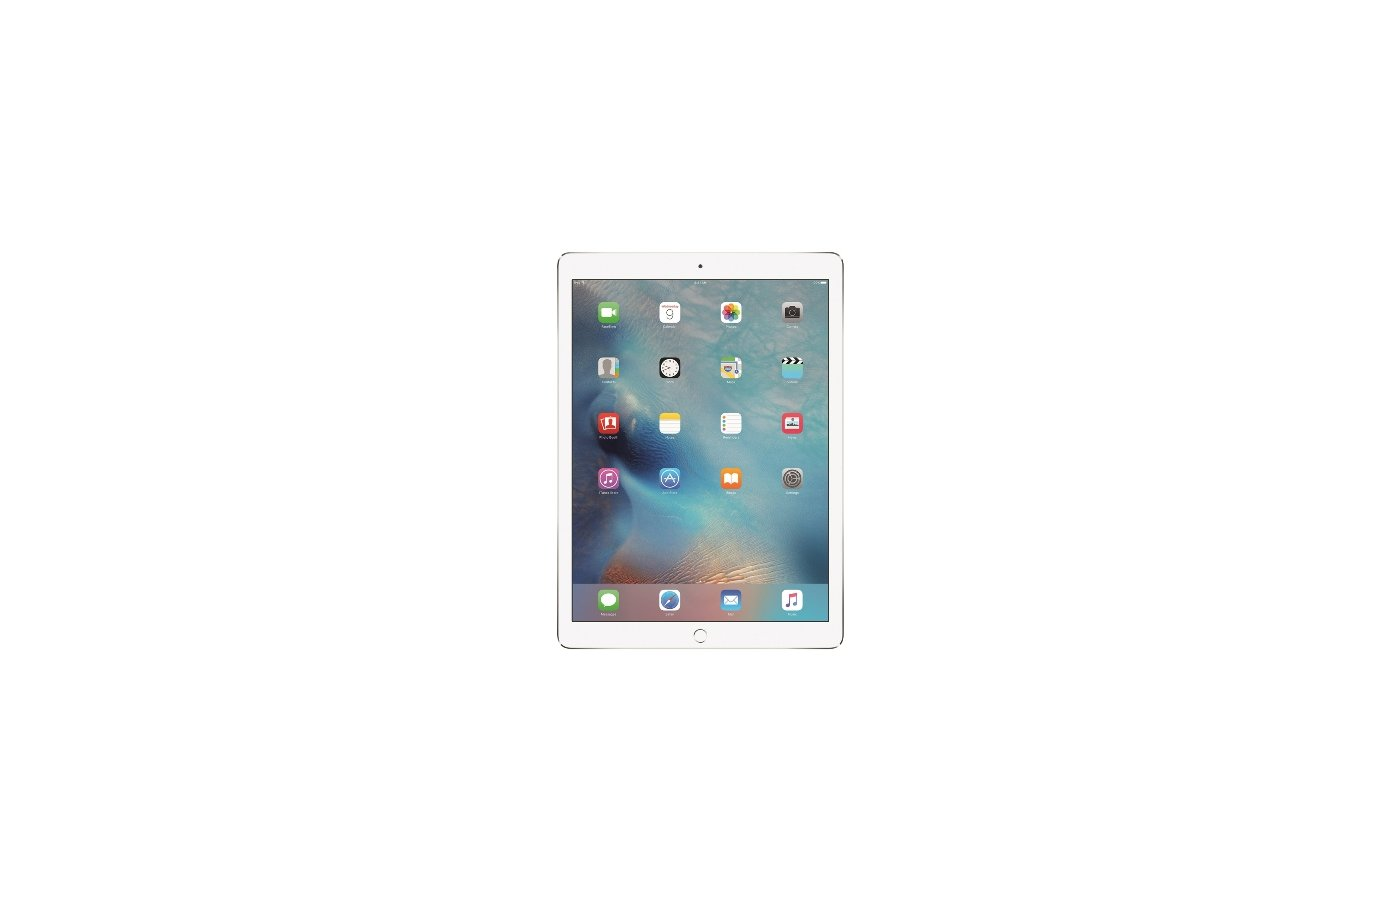 Планшет Apple iPad Pro 12.9 /ML0G2RU/A/